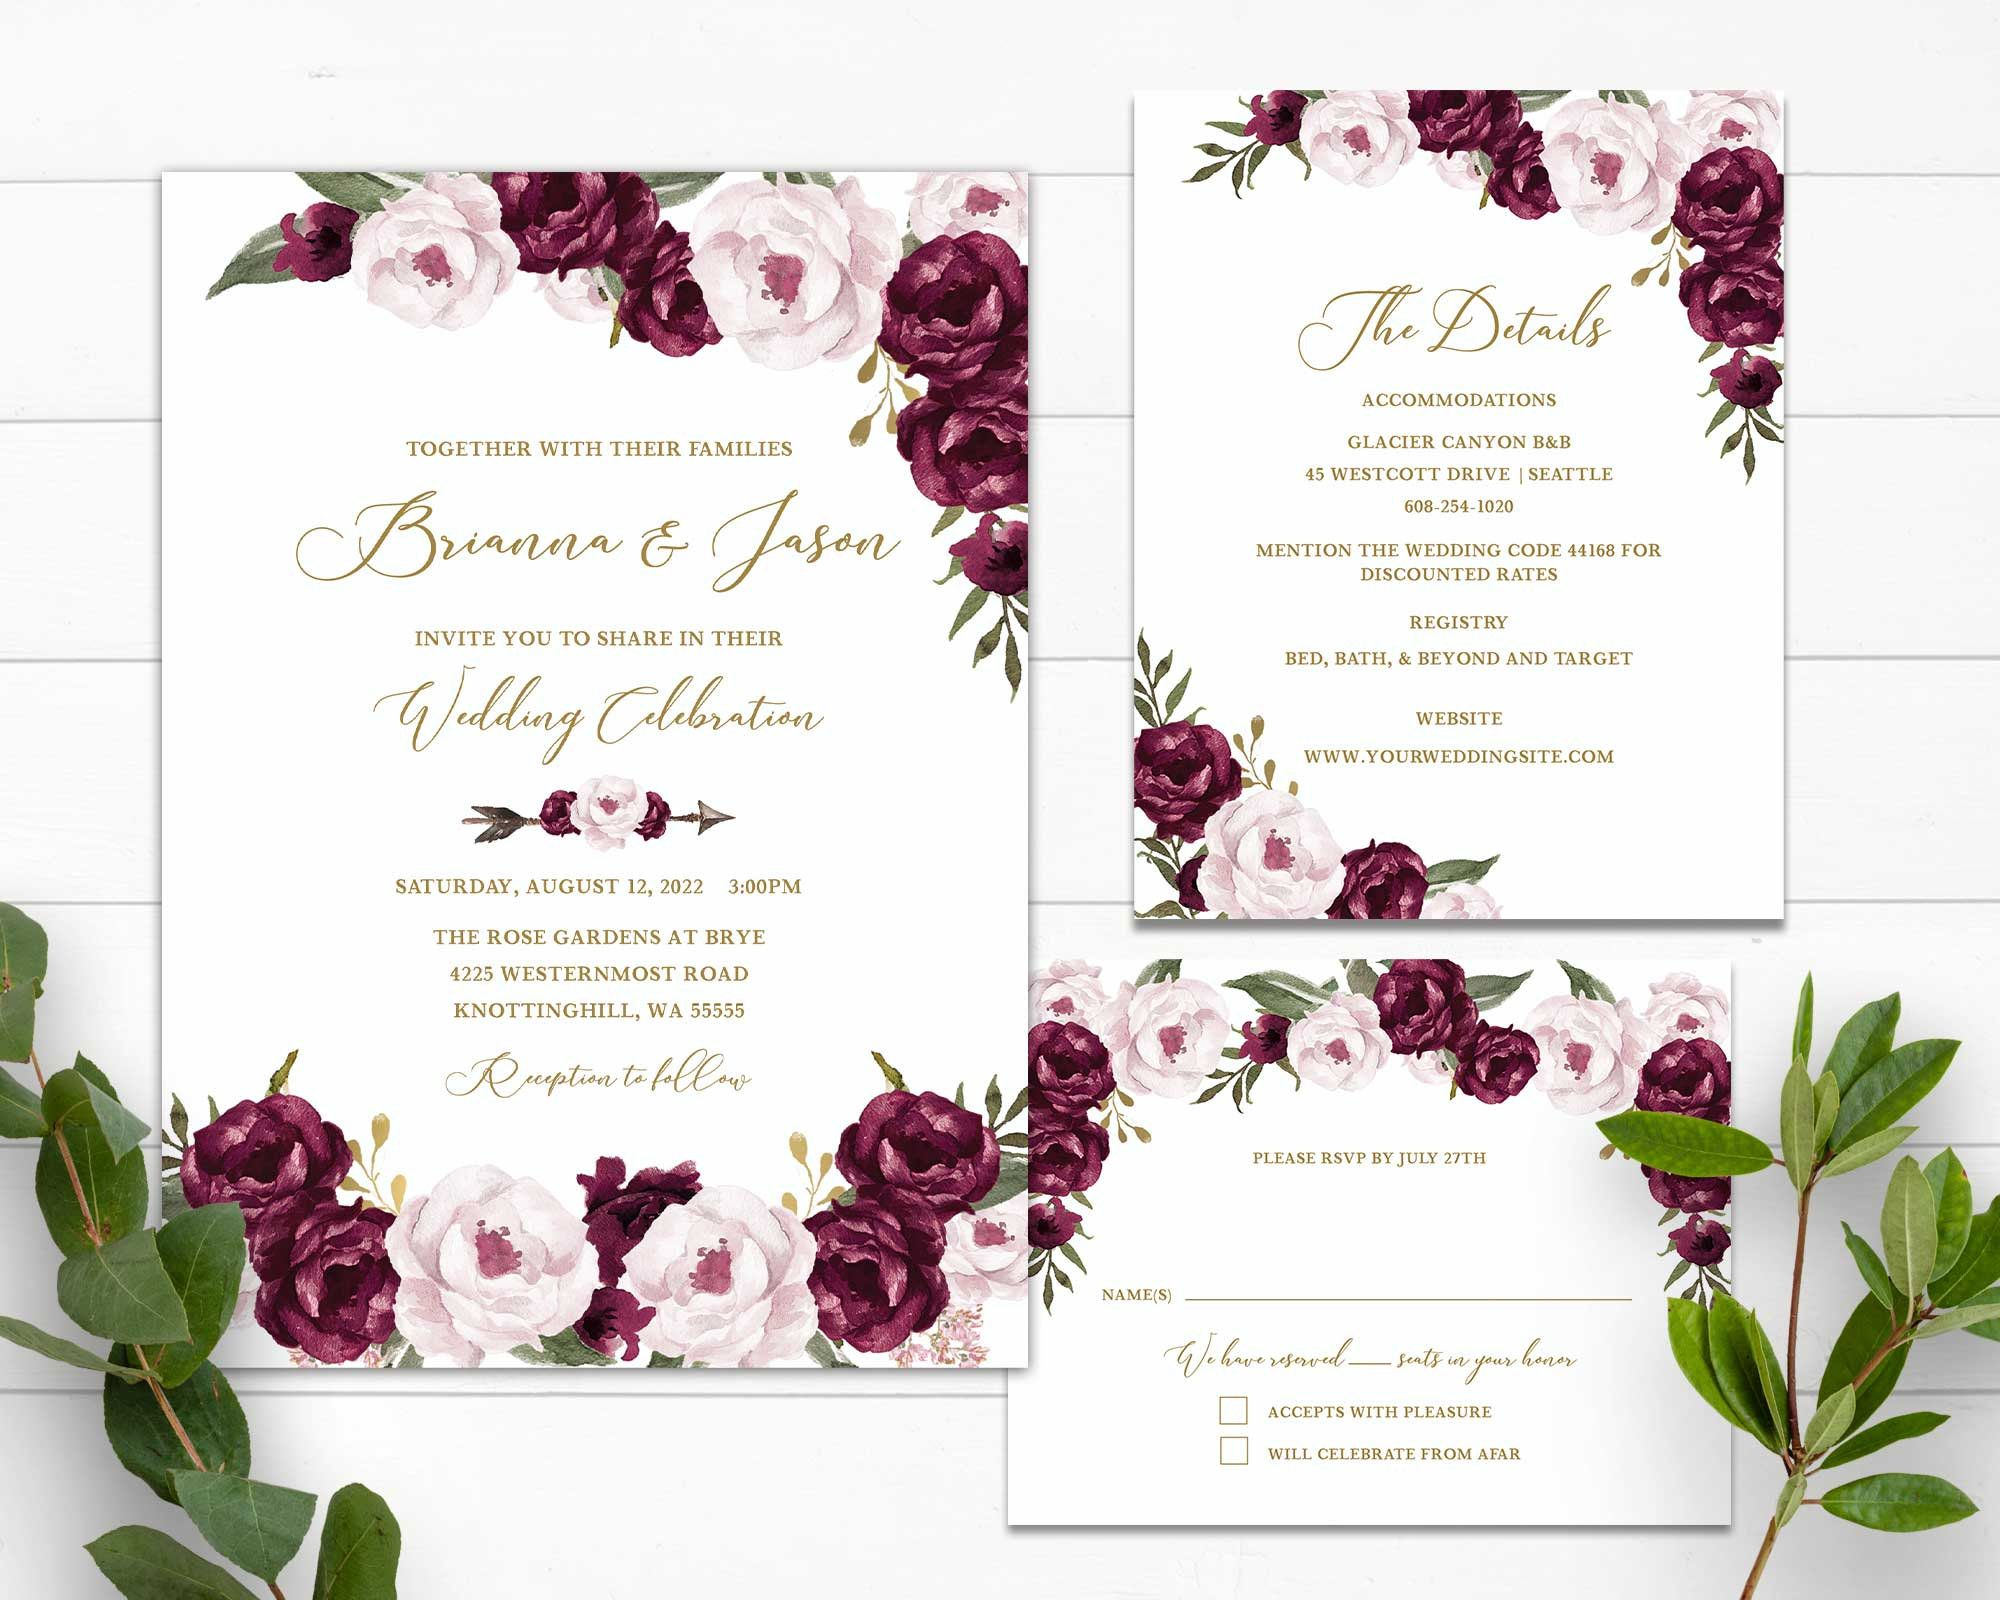 Plum Wedding Invitation Template Floral Wedding Invitation Etsy In 2020 Plum Wedding Invitations Floral Wedding Invitations Floral Wedding Invitations Printable